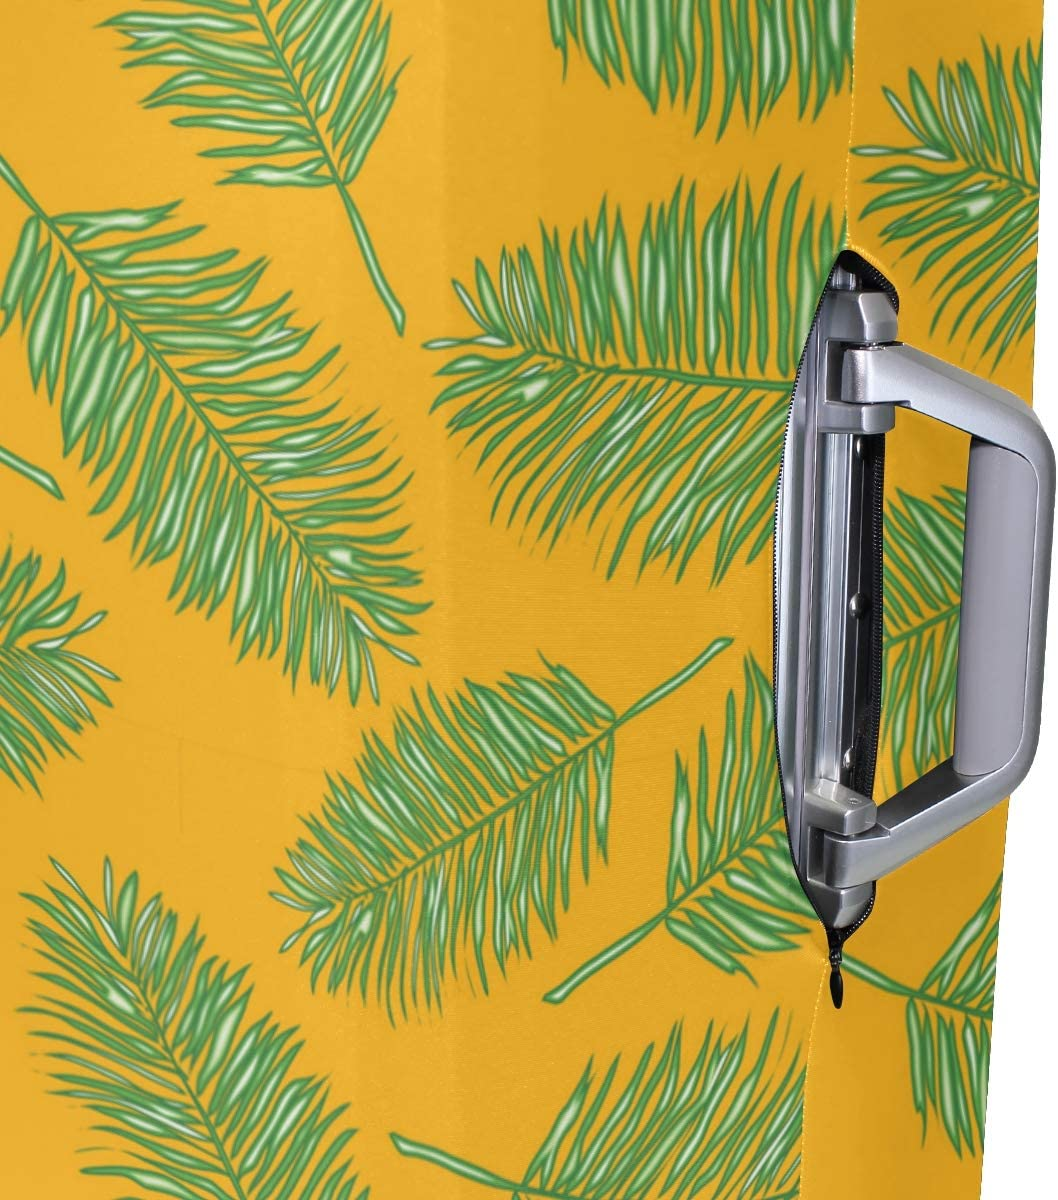 Bright Yellow Palm Leaves Travel Luggage Protector Case Suitcase Protector For Man/&Woman Fits 18-32 Inch Luggage